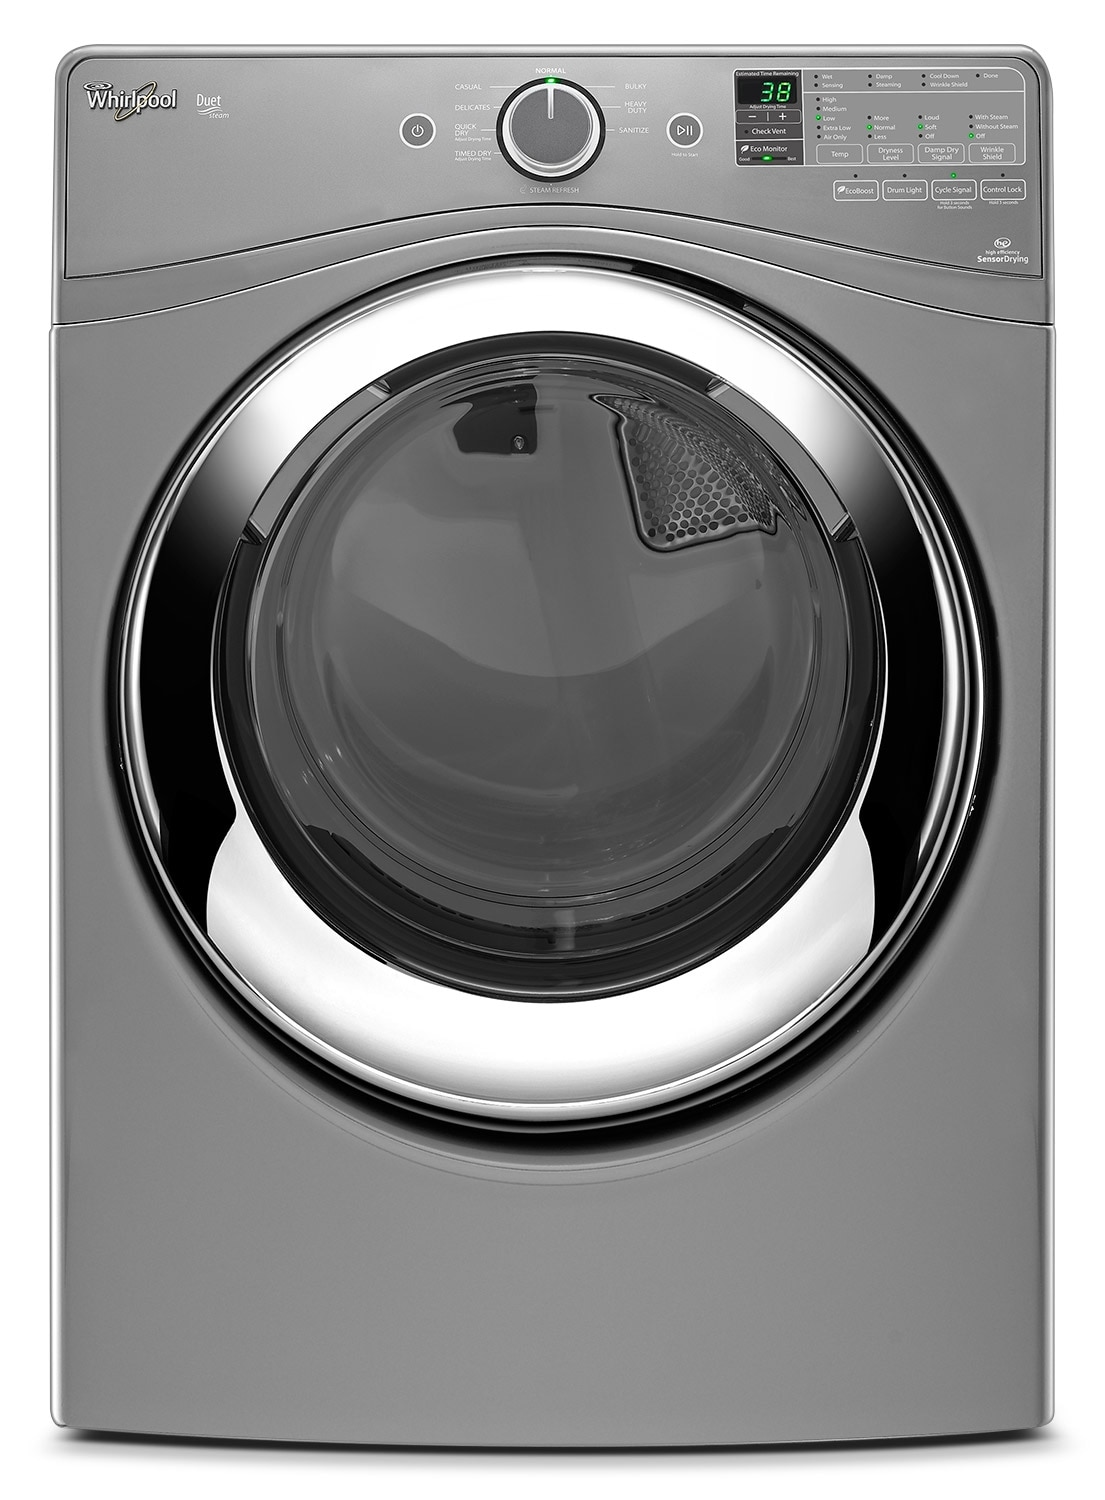 Whirlpool Gas Dryer (7.3 Cu. Ft.) WGD87HEDC